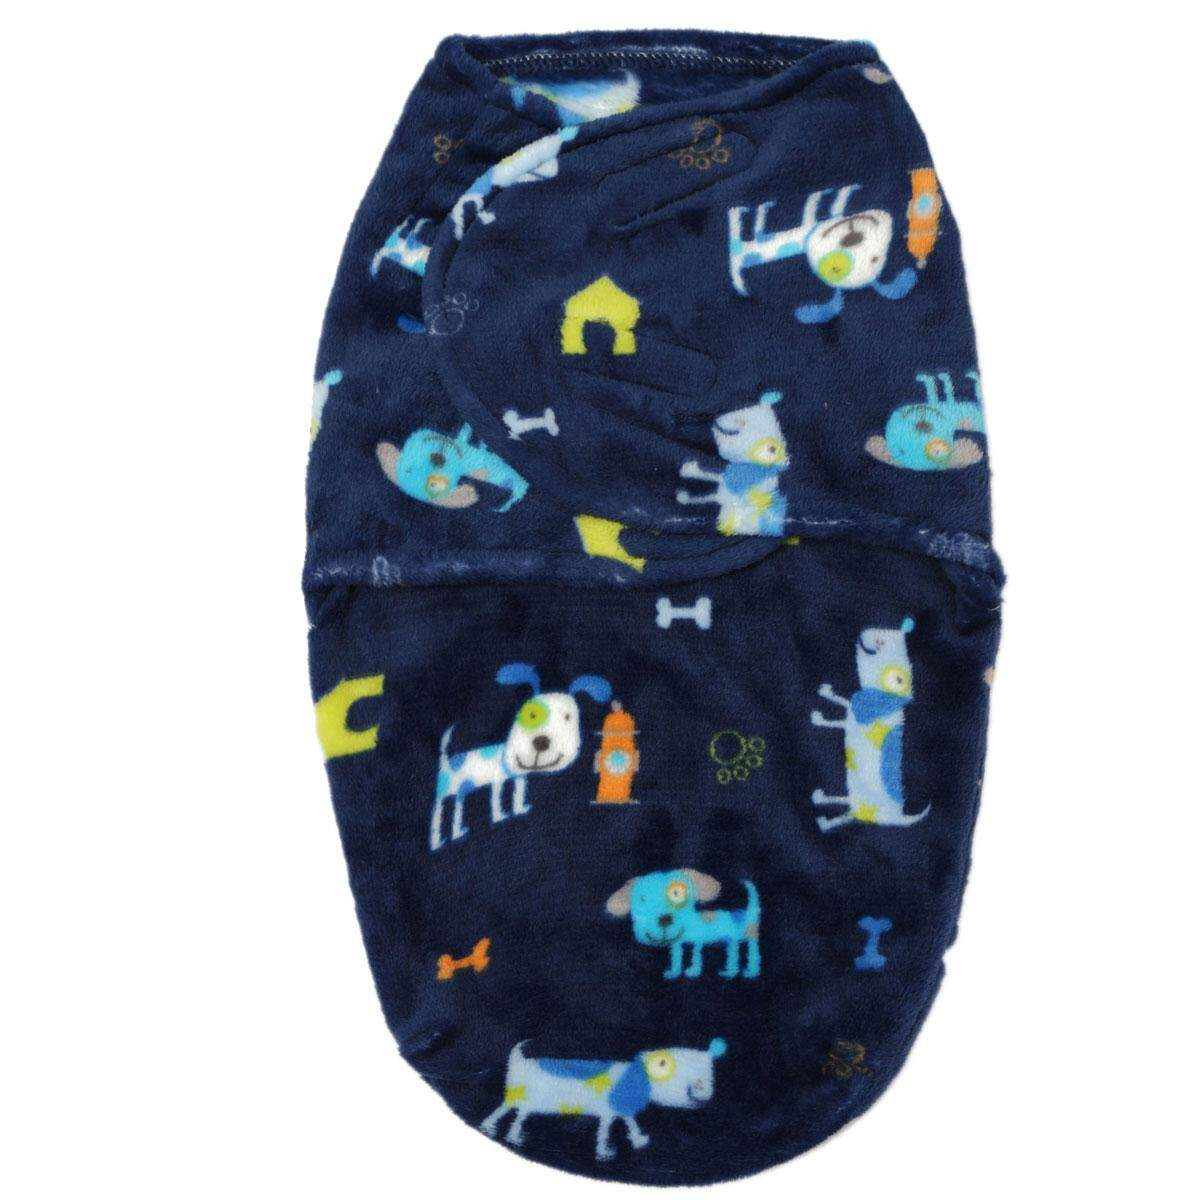 0-6months Newborn Swaddle Wrap Warm Blanket Baby Infant Soft Fleece Sleeping Bag - Intl By Autoleader.